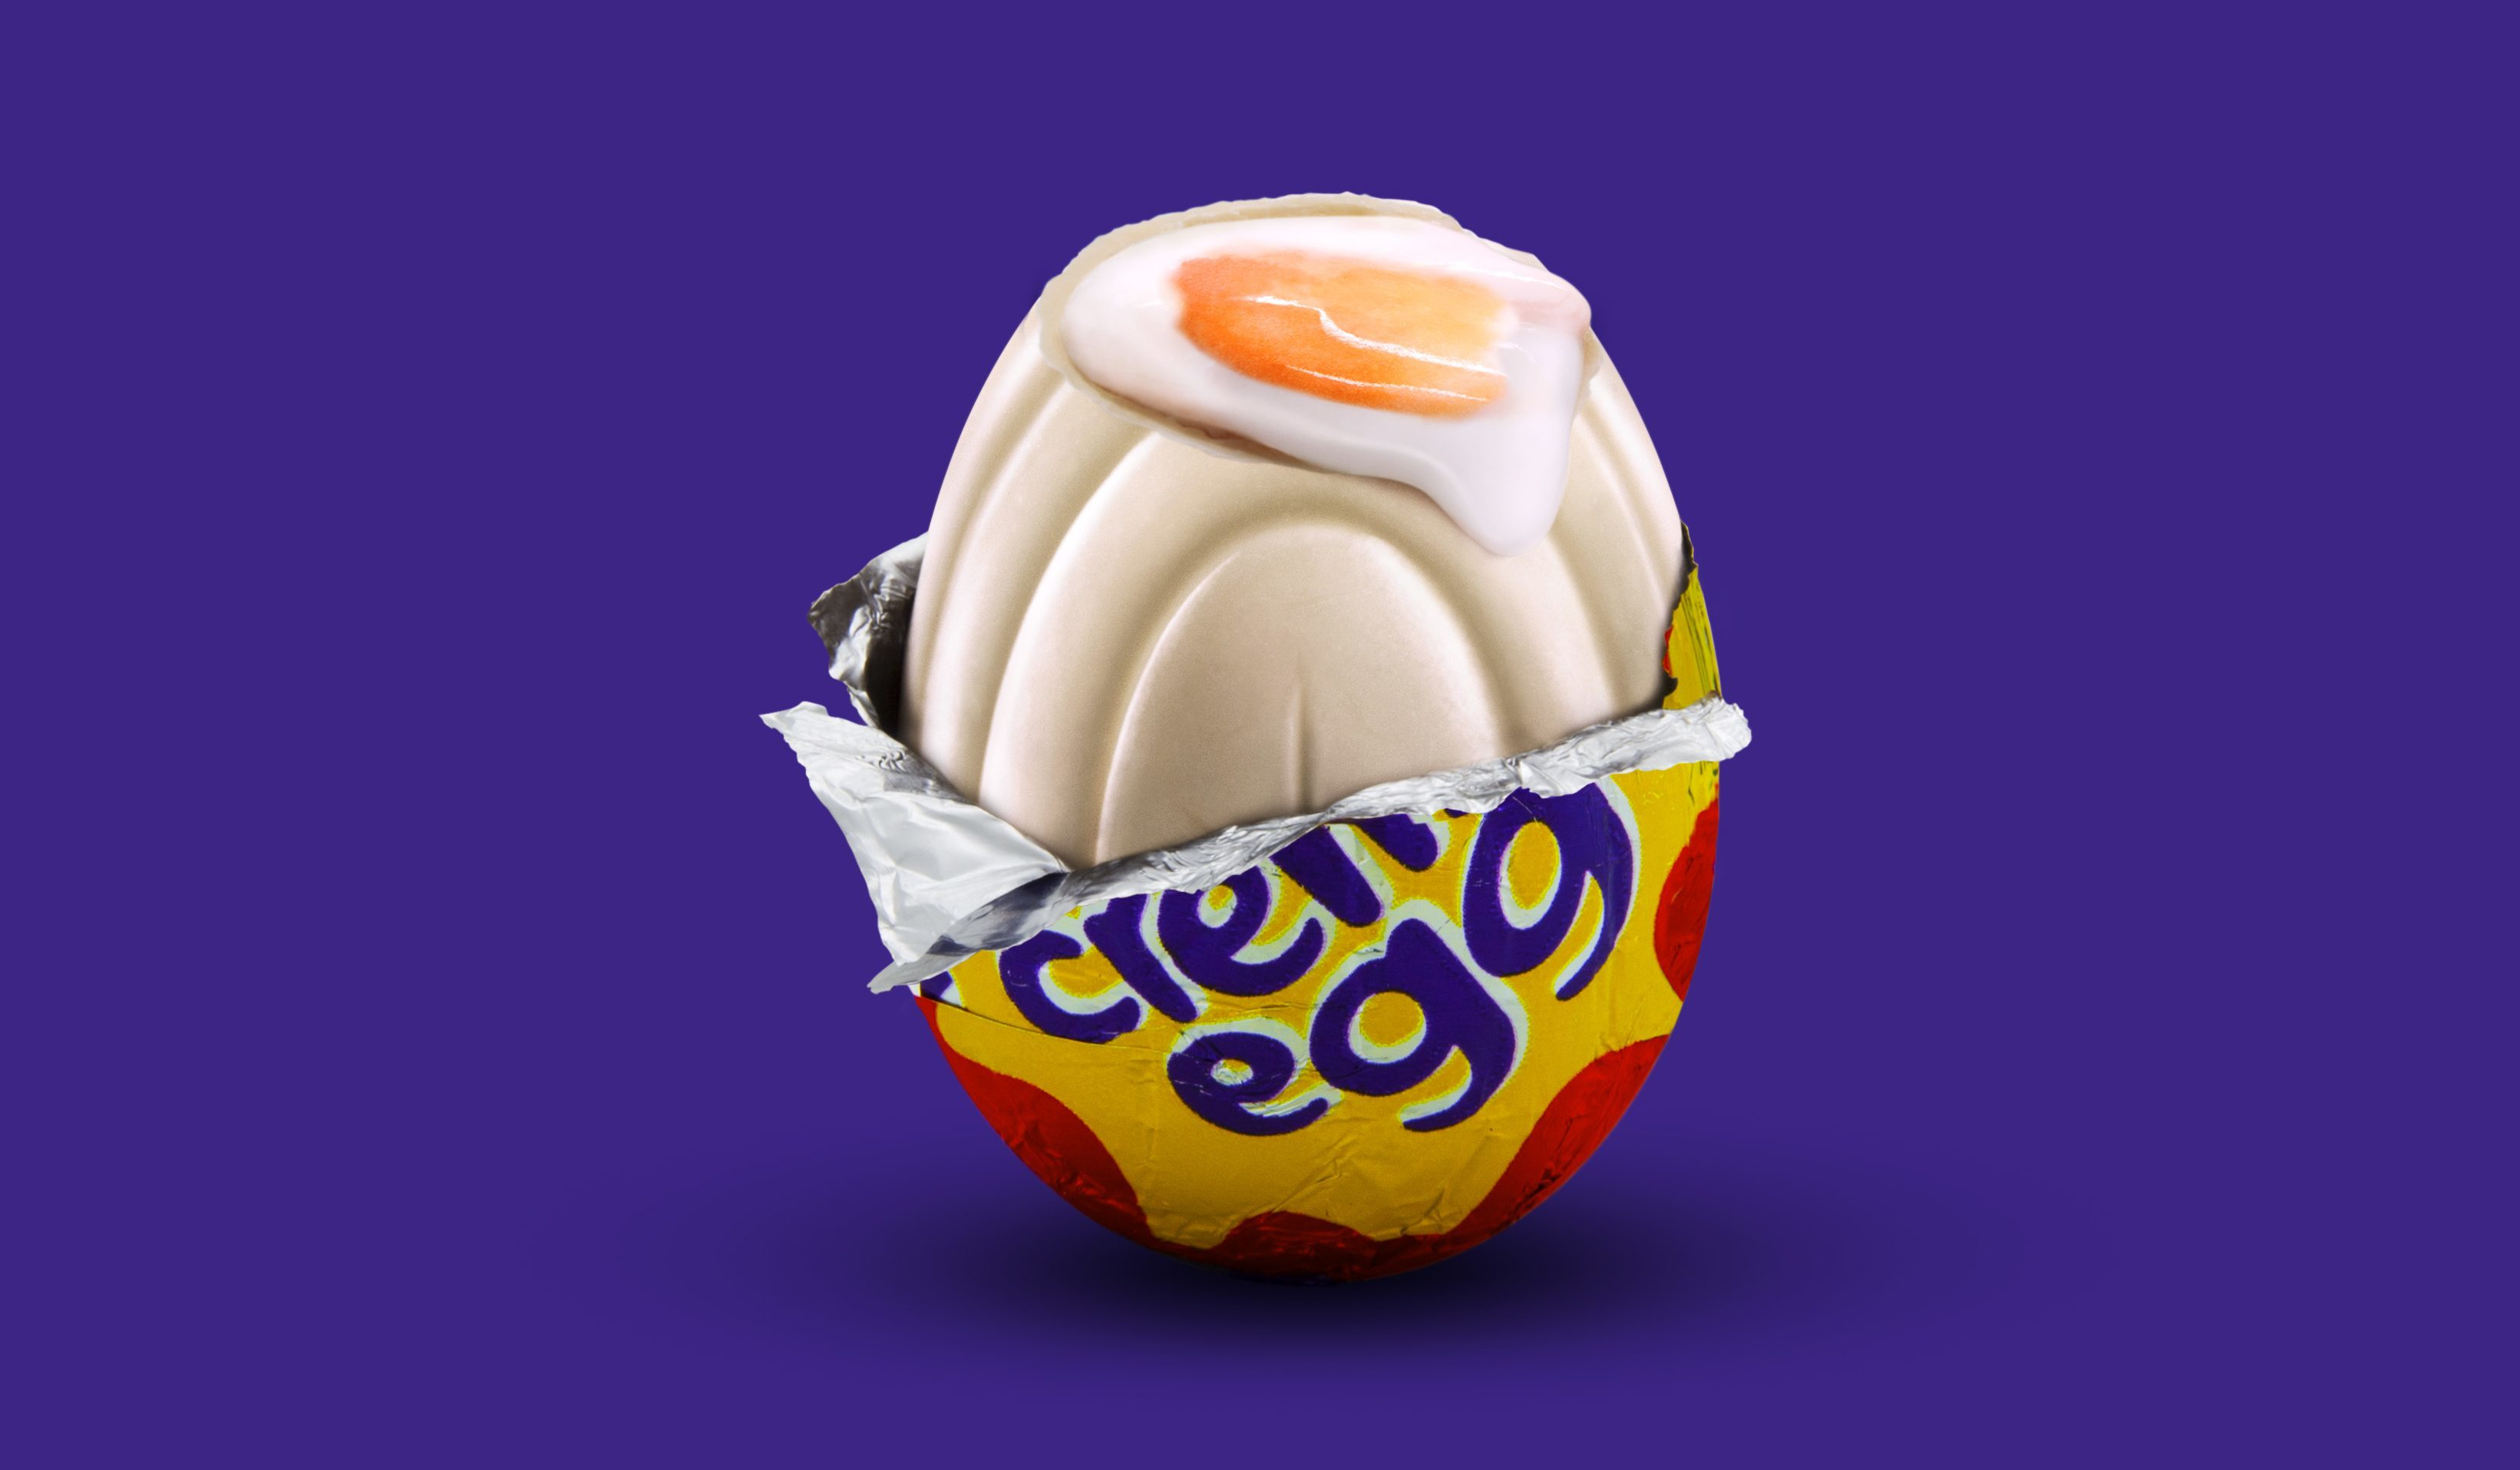 The new white Cadbury's Creme Egg (Cadbury's)